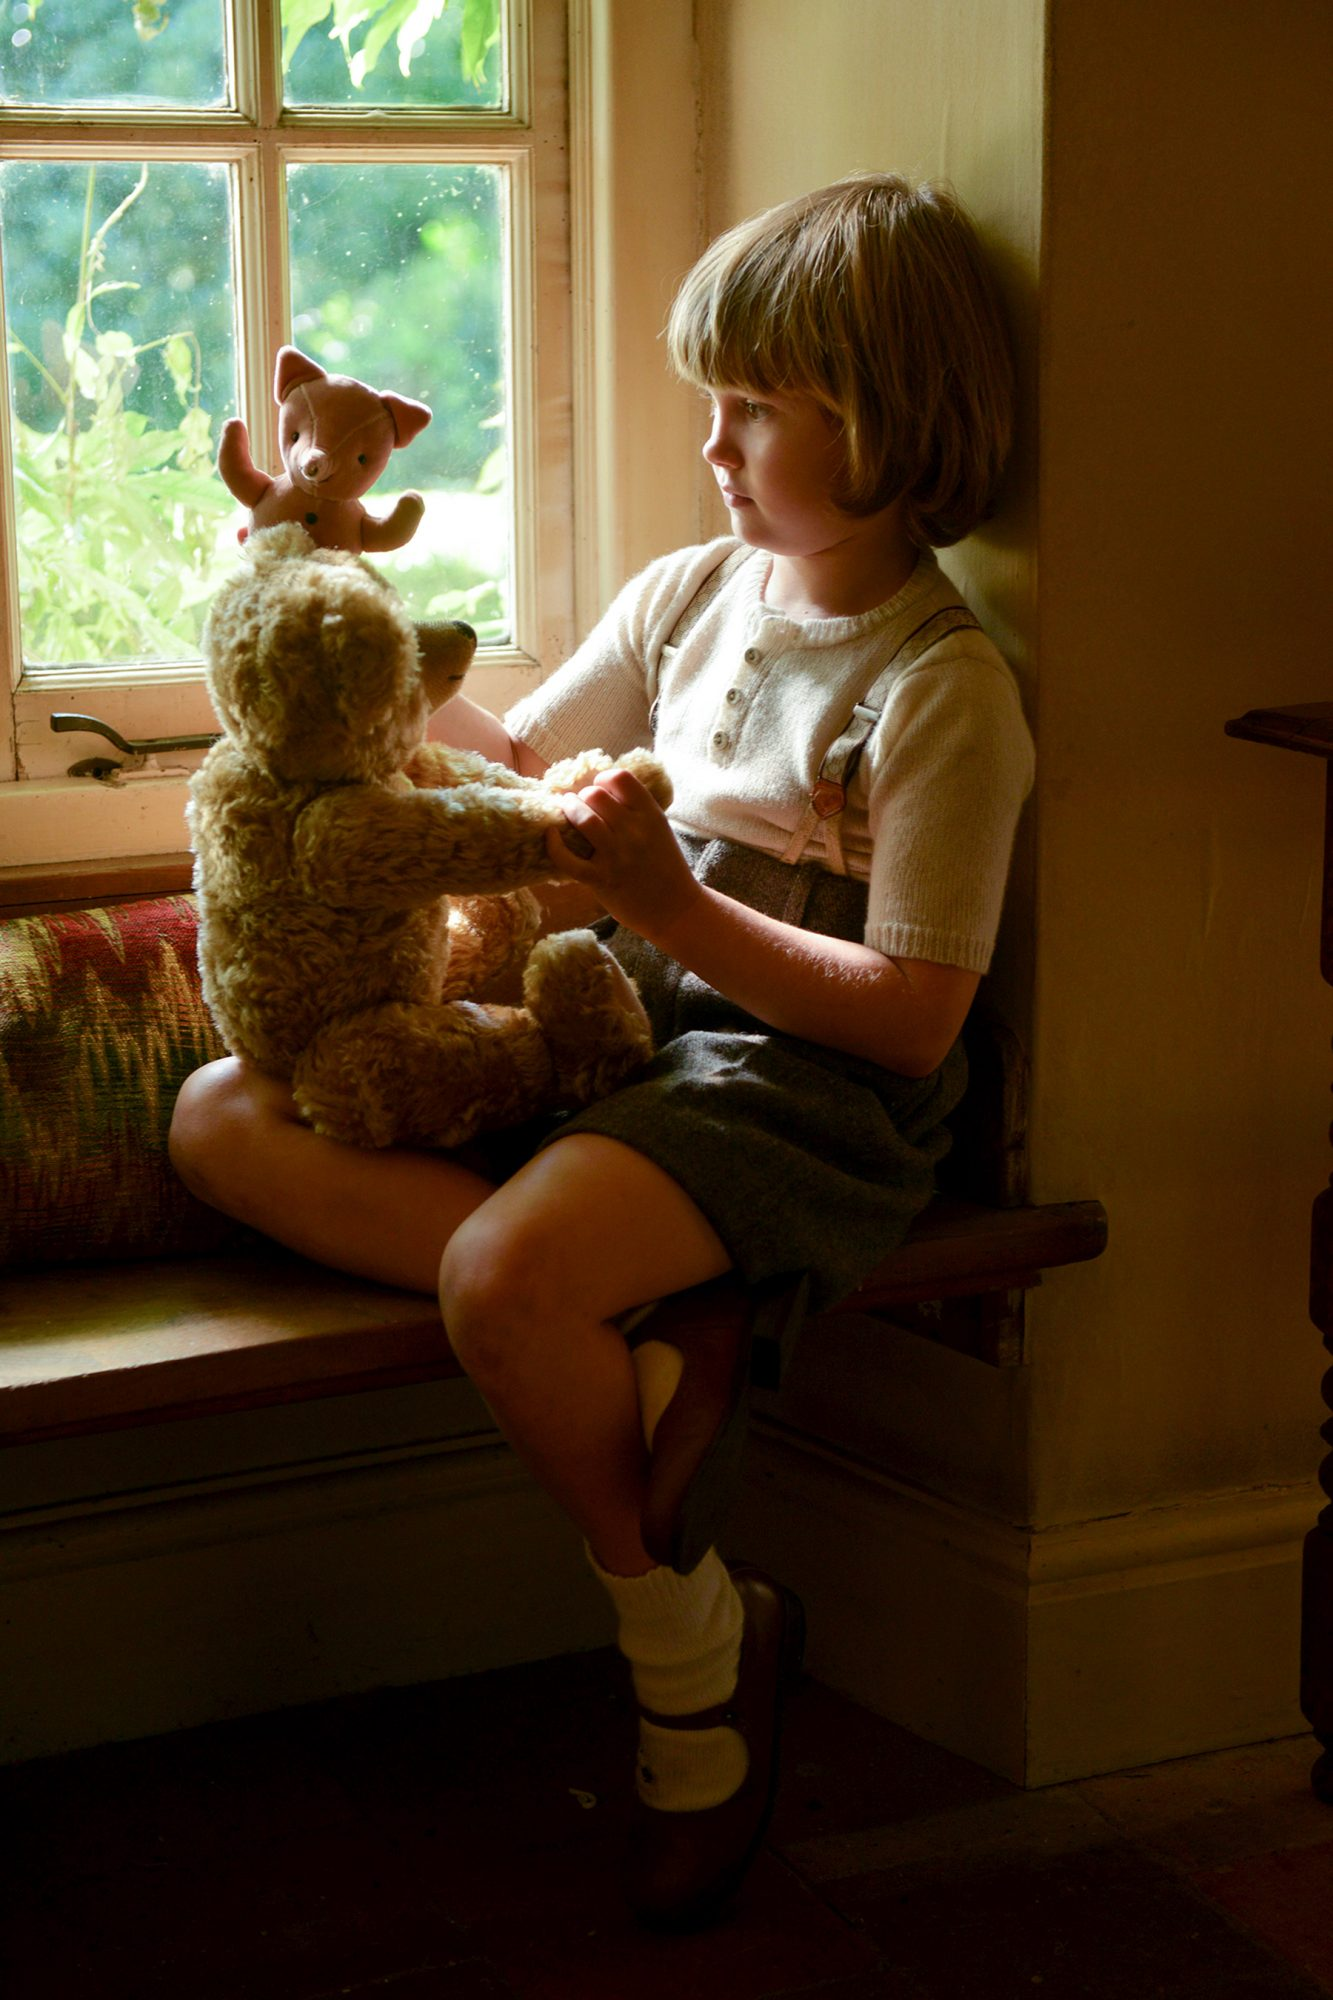 Will Tilston as 'Christopher Robin Milne' in the film UNTITLED A